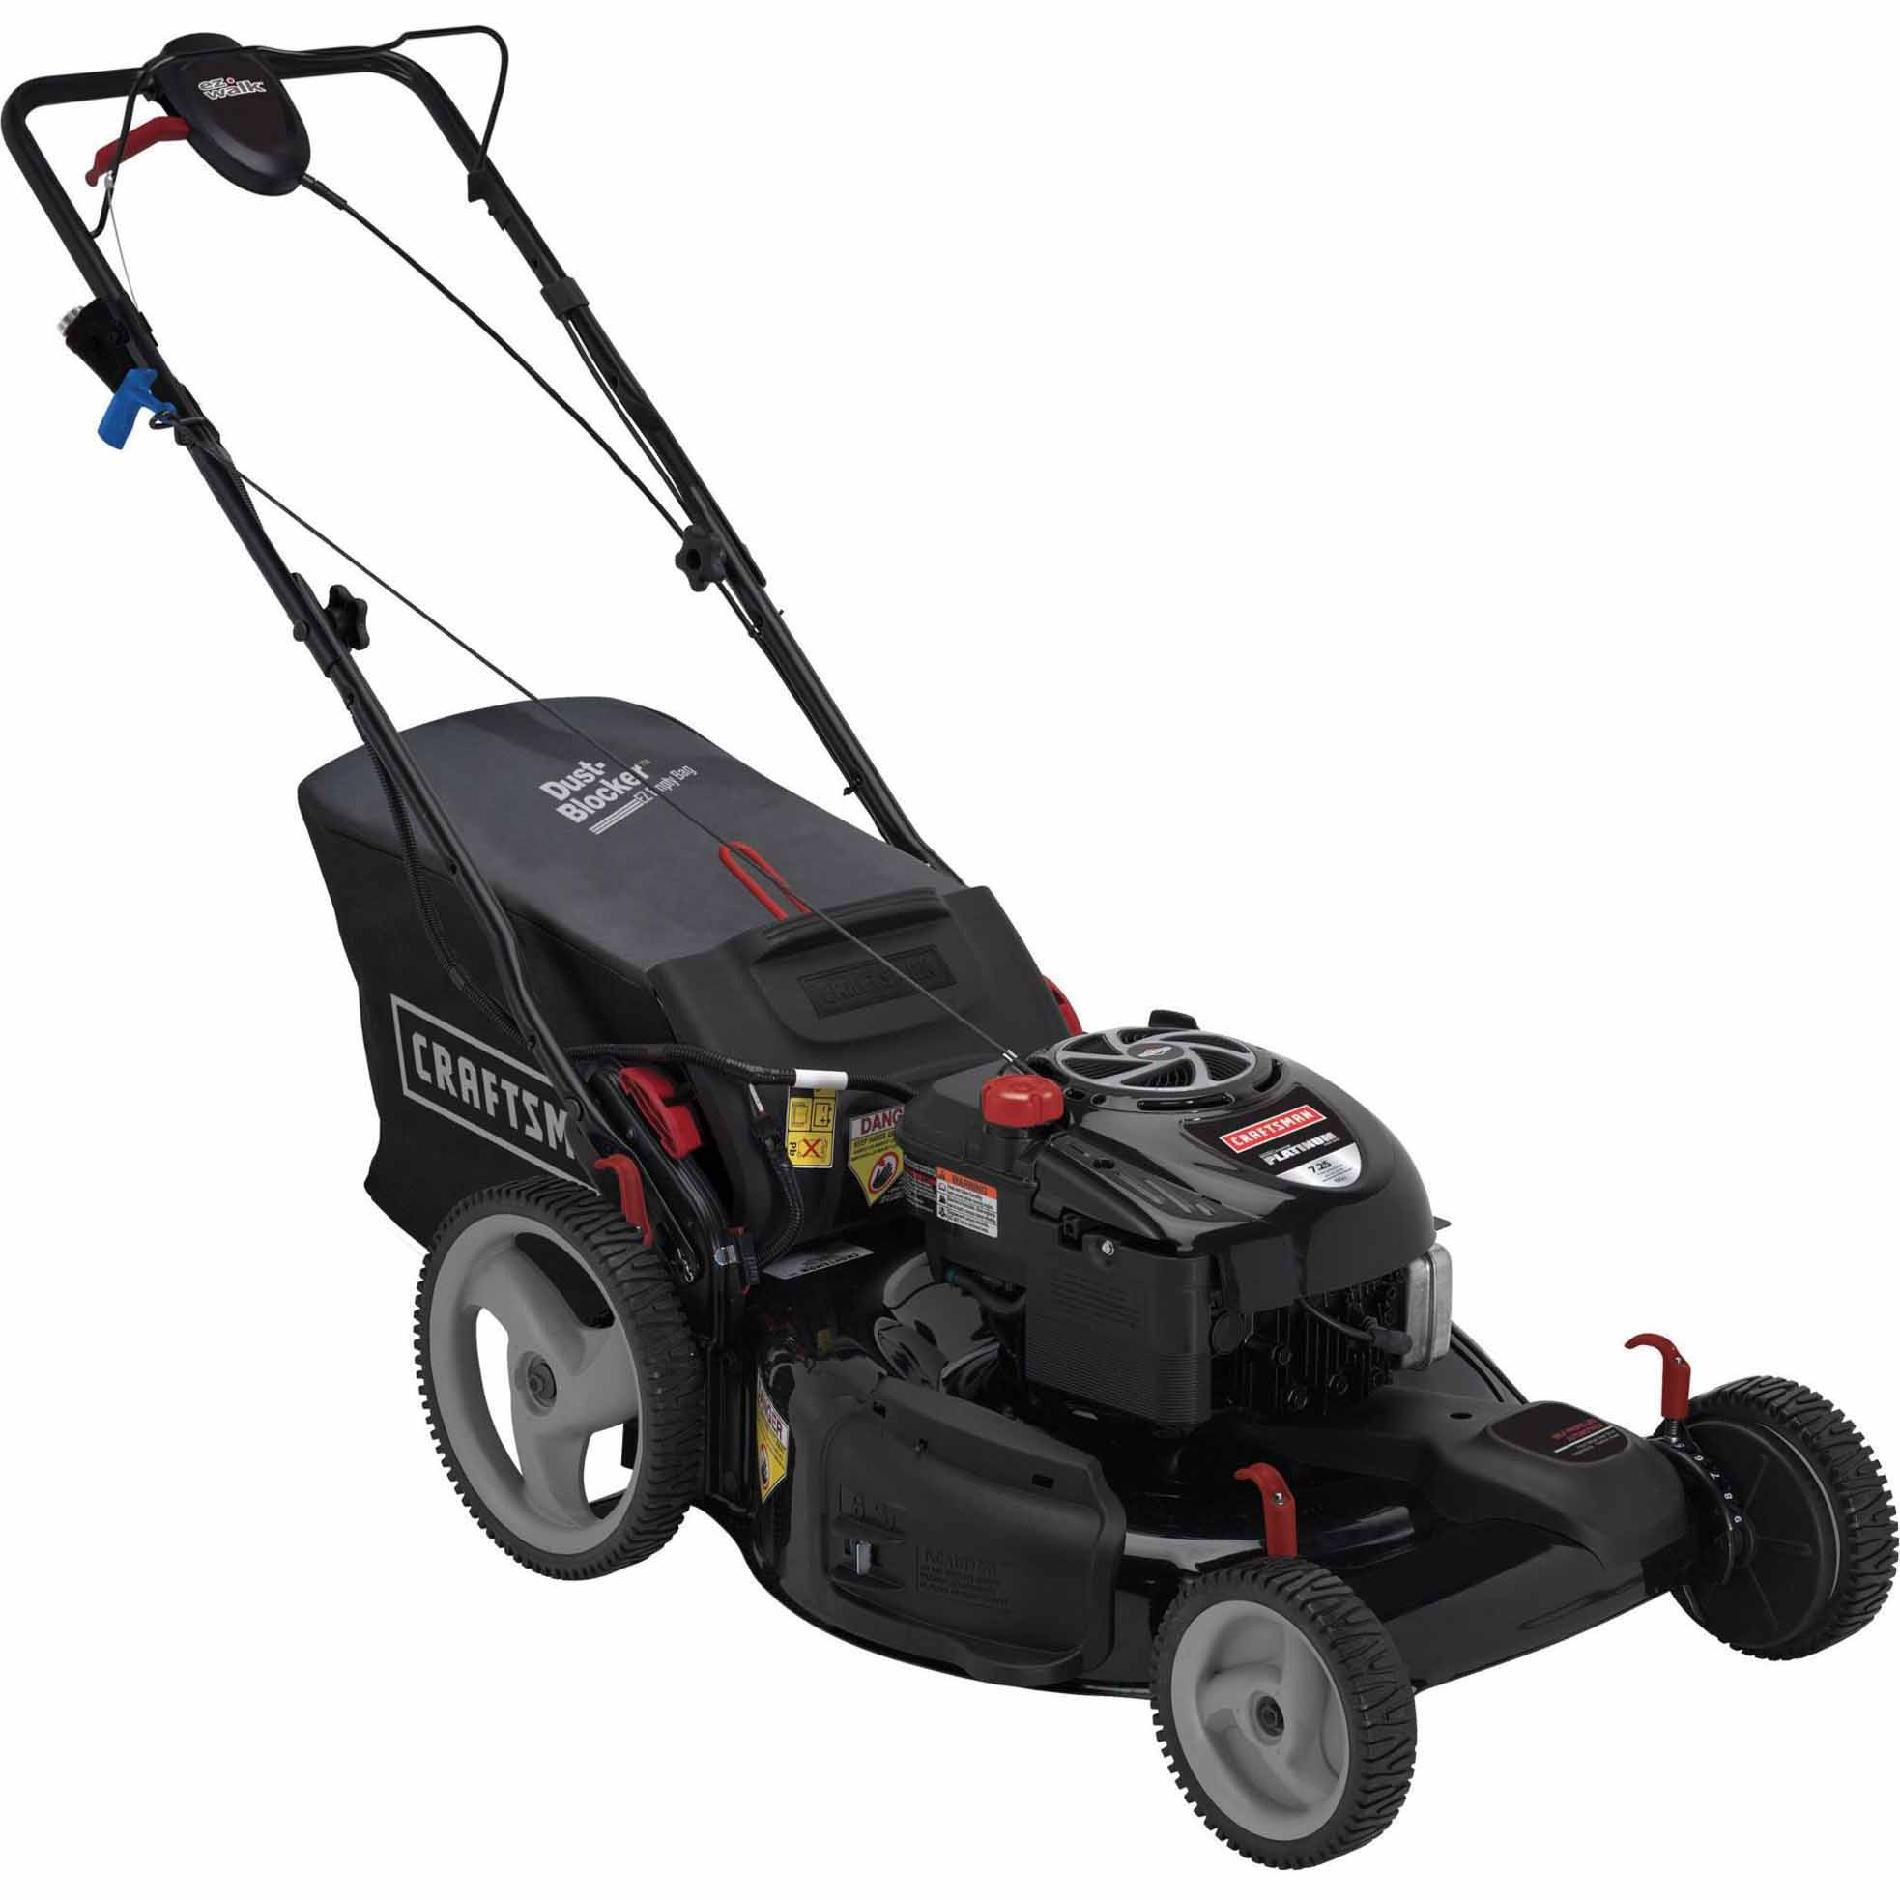 Check Out Craftsman 190cc Briggs Stratton Platinum Engine 22 Front Drive Self Propelled Ez Lawn Mower Shopyourway Lawn Mower Lawn Mower Repair Mower